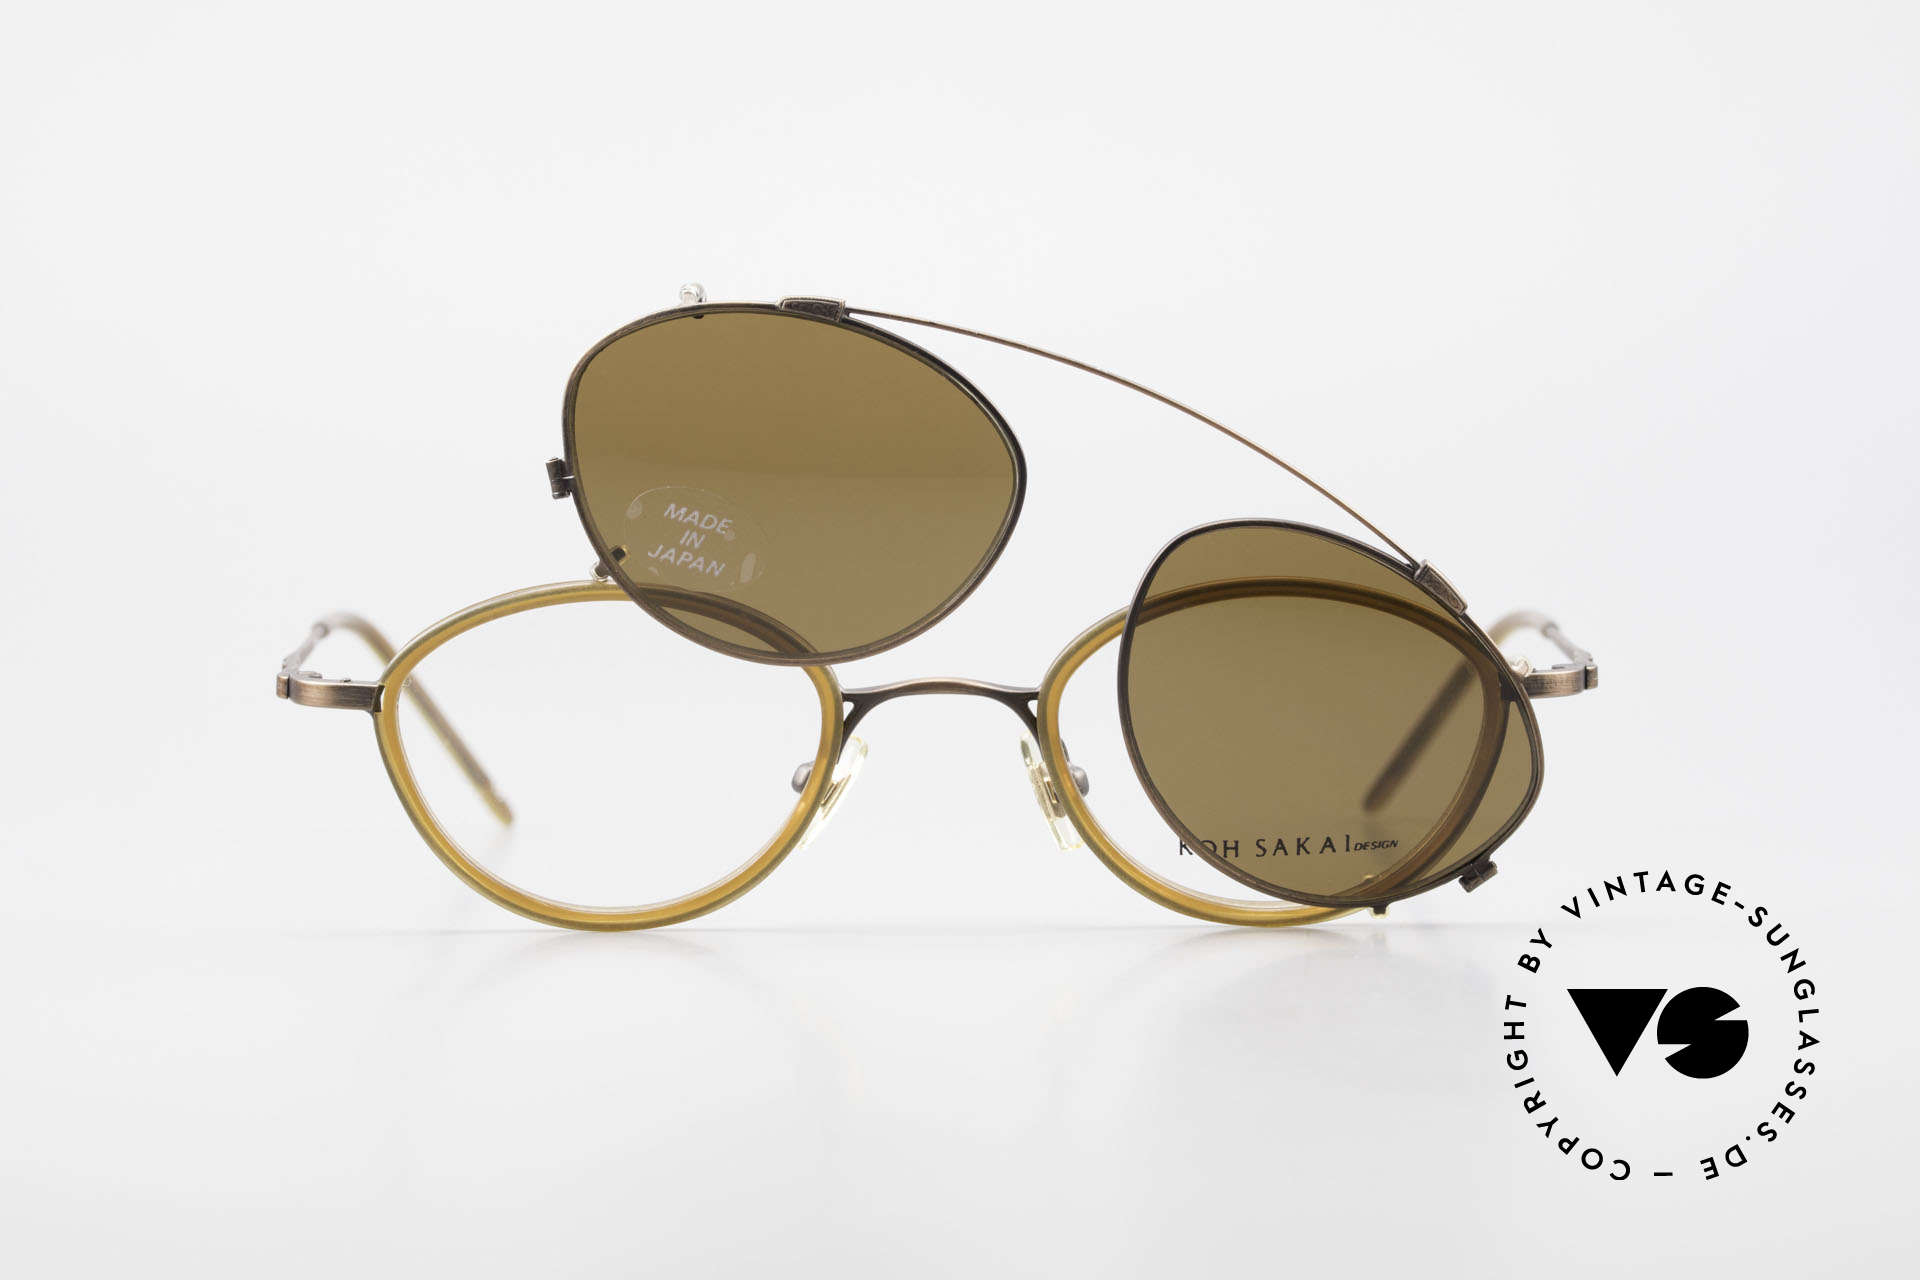 Koh Sakai KS9832 Vintage Glasses With Clip On, Size: medium, Made for Men and Women